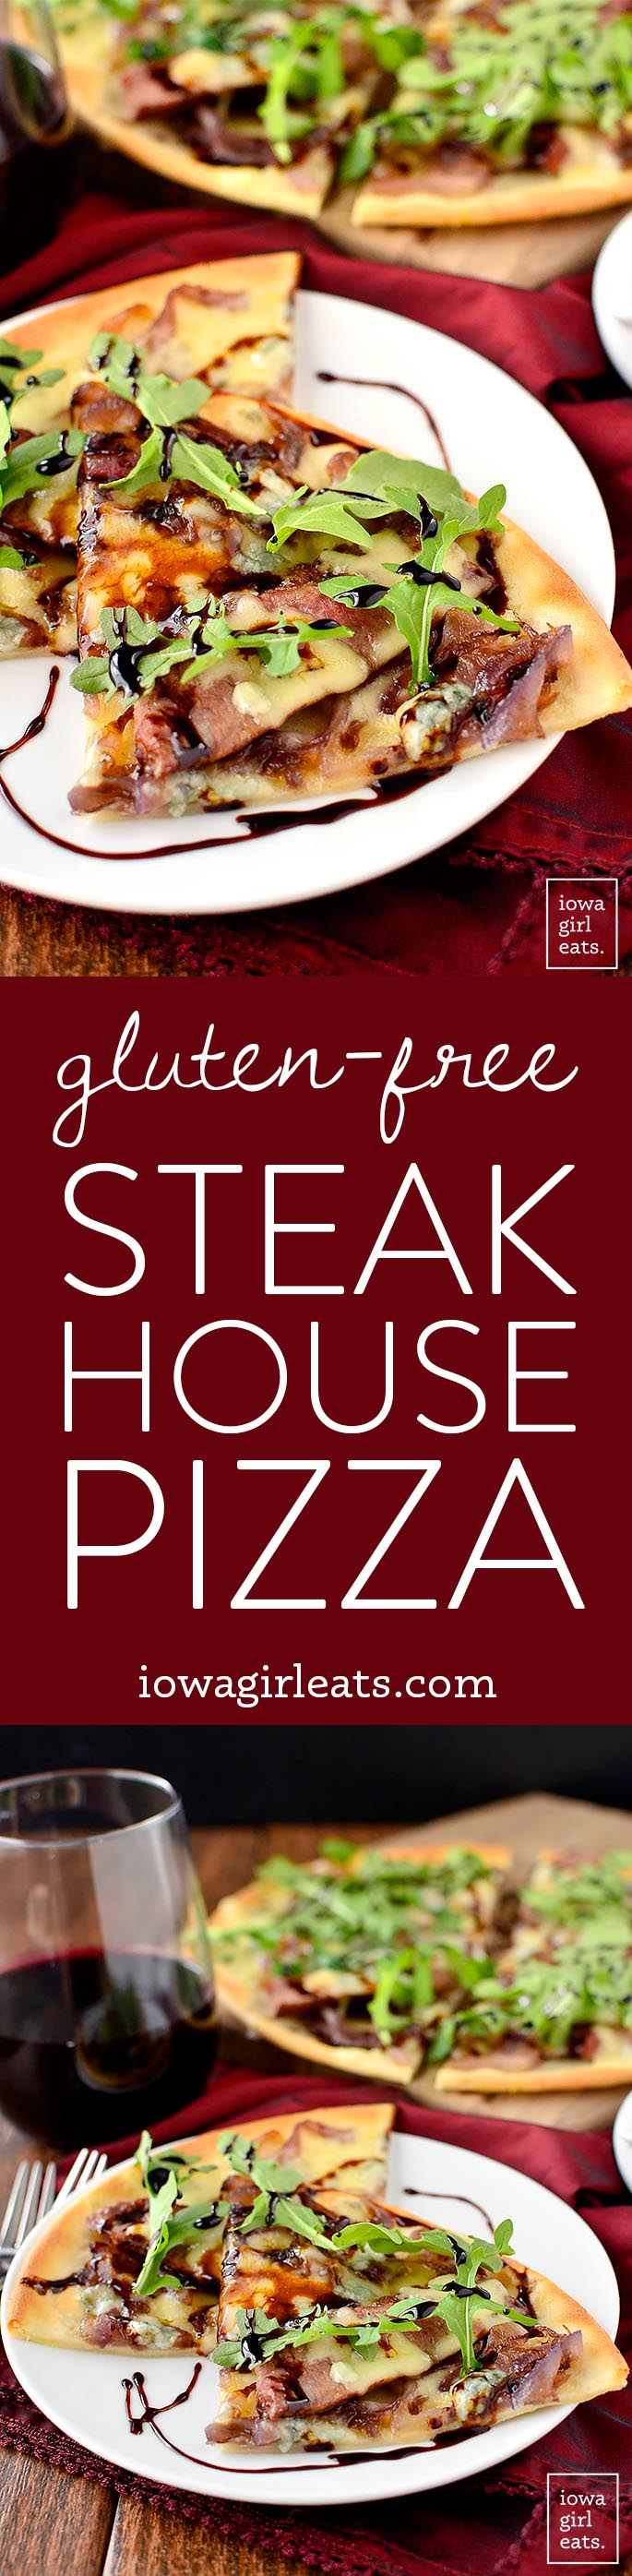 Gluten-Free Steak House Pizza is loaded with steak house favorites like buttery steak, caramelized onions, balsamic reduction, and two types of cheeses! | iowagirleats.com